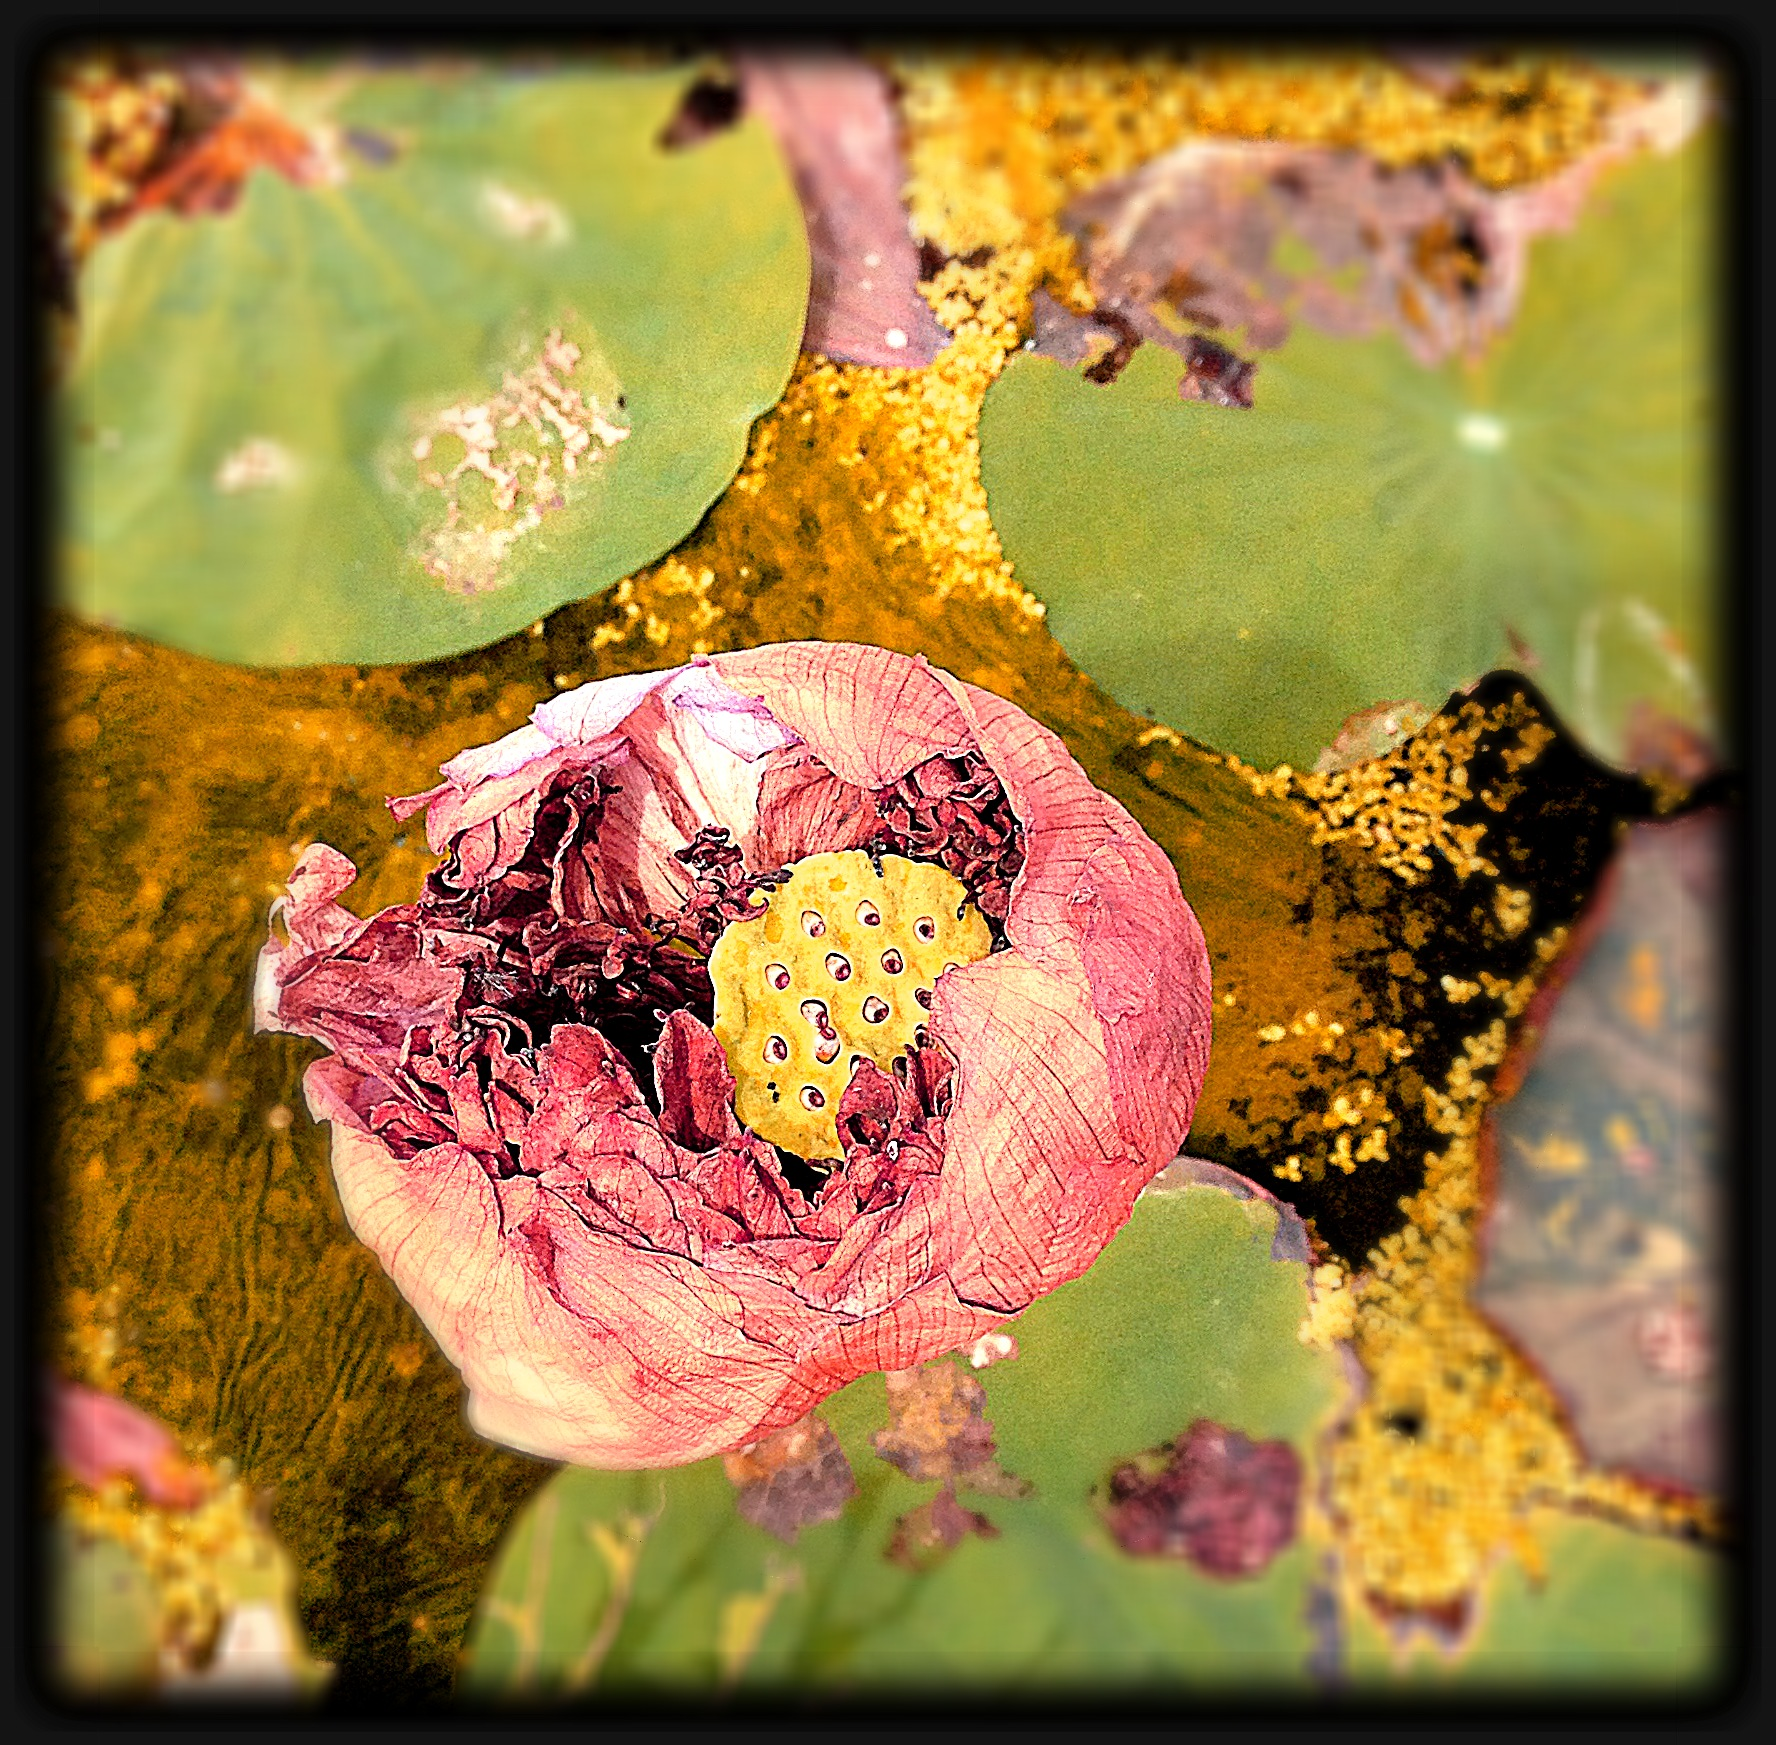 Two more stages of the lotus life global nomads 2010 lotus and the lotus flowers around my office do not want to play along i have two more stages at the end of the life cycles decay and rebirth mightylinksfo